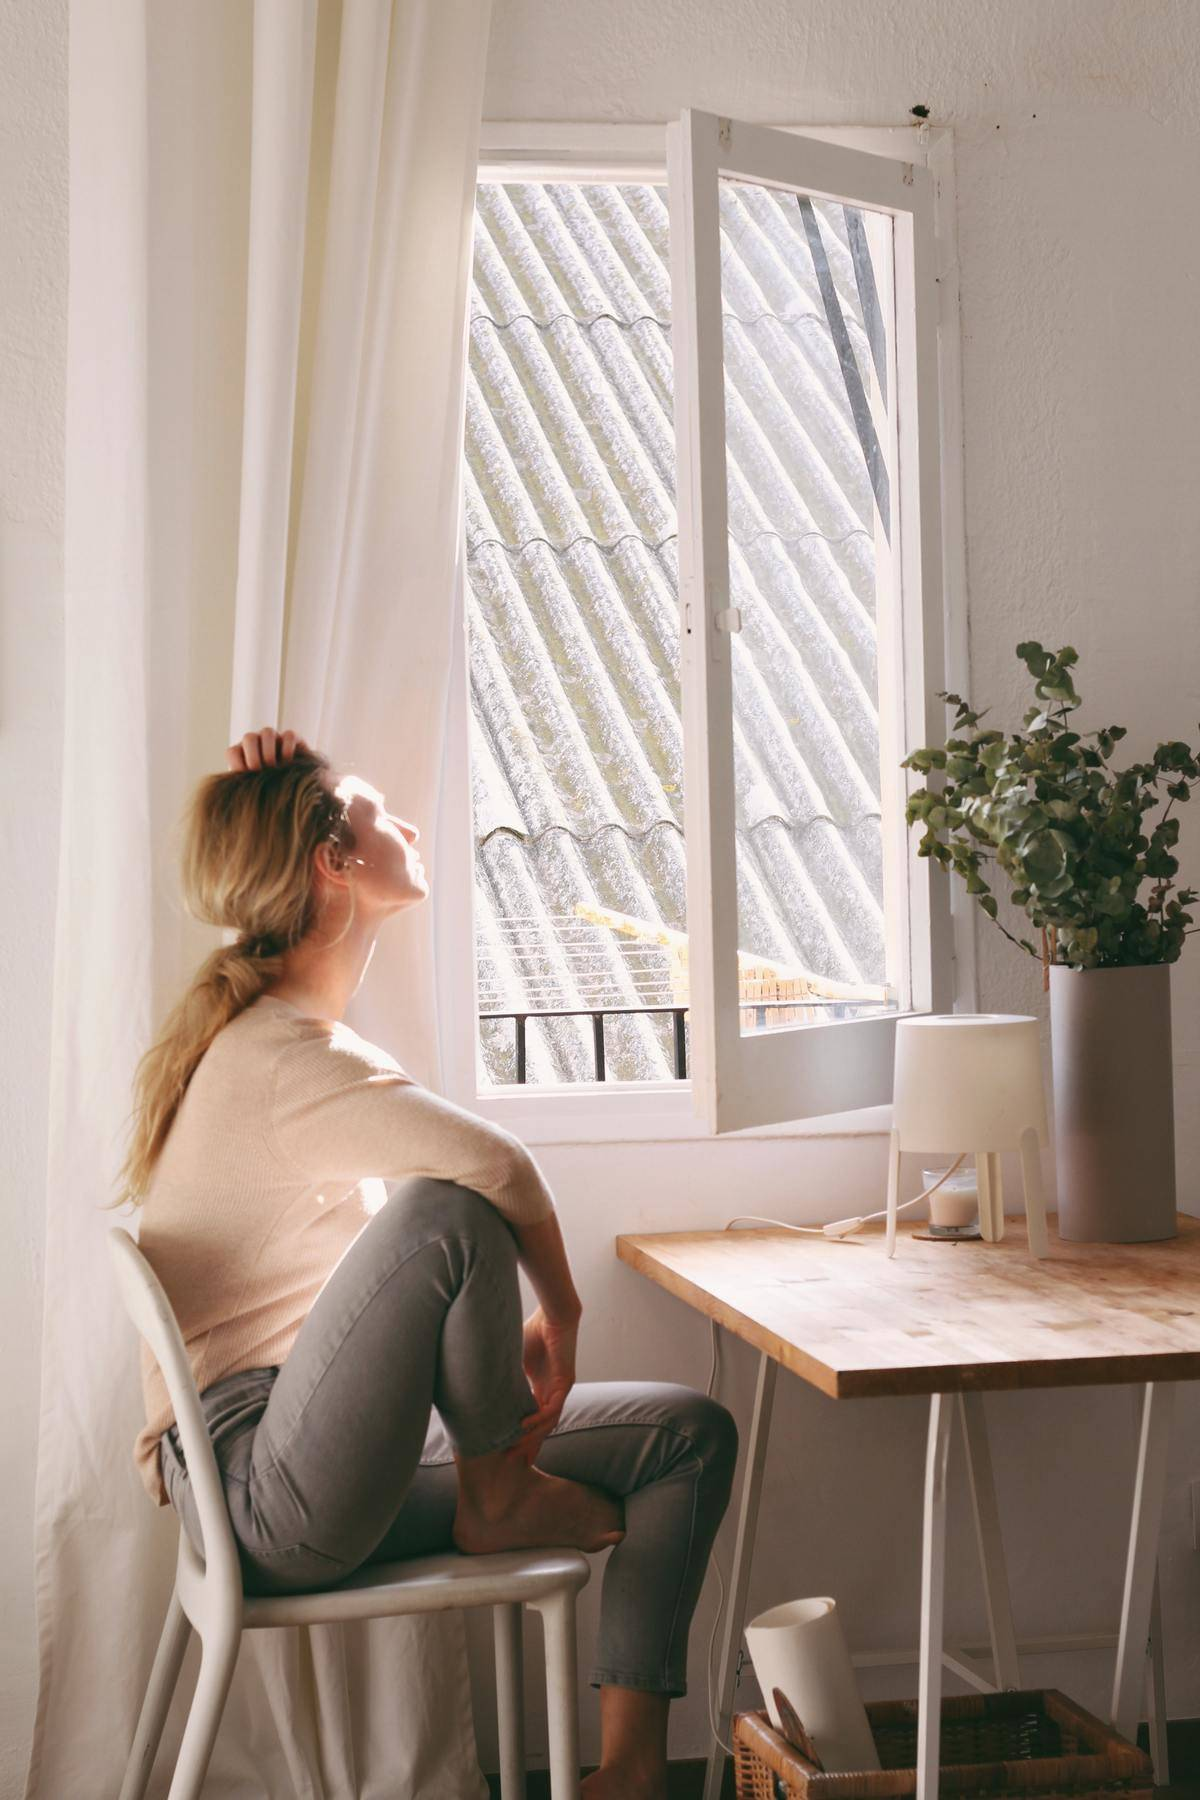 Woman sitting at window and looking outside